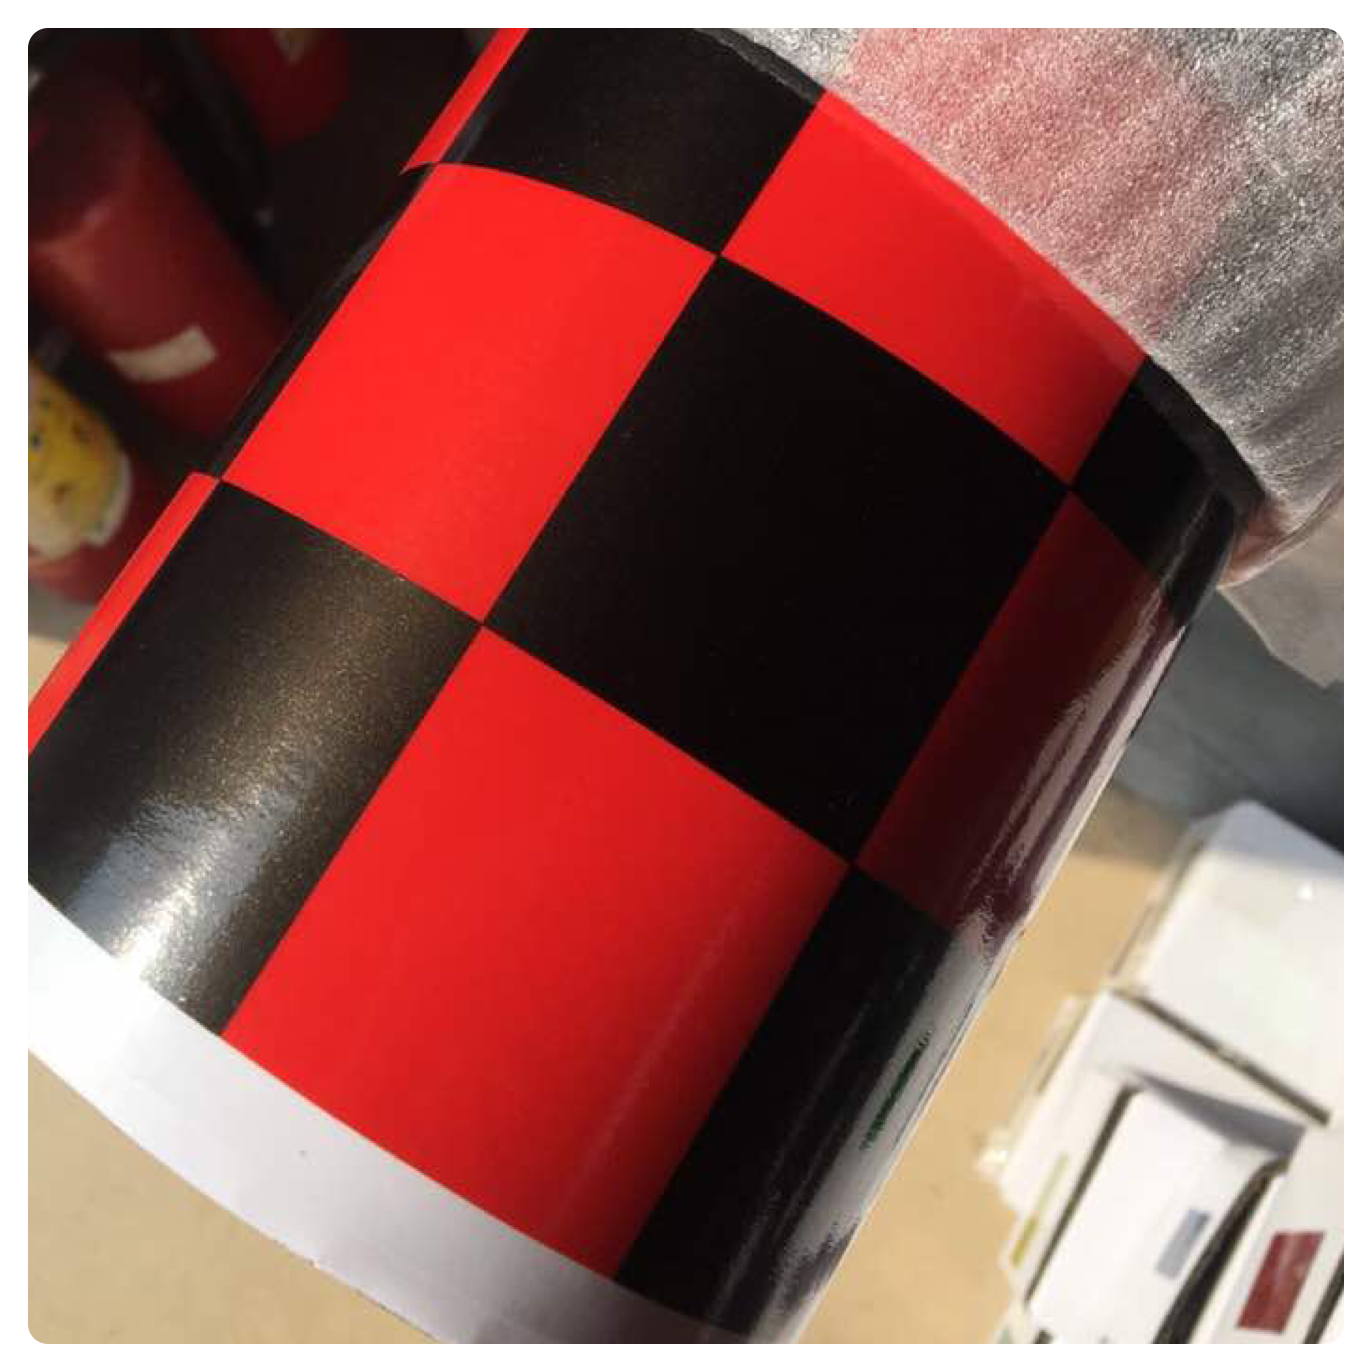 NEW CHECK CHEQUERED GLOSS VINYL CAR WRAP WRAPPING GRAPHIC sticker bomb Car Roof 7